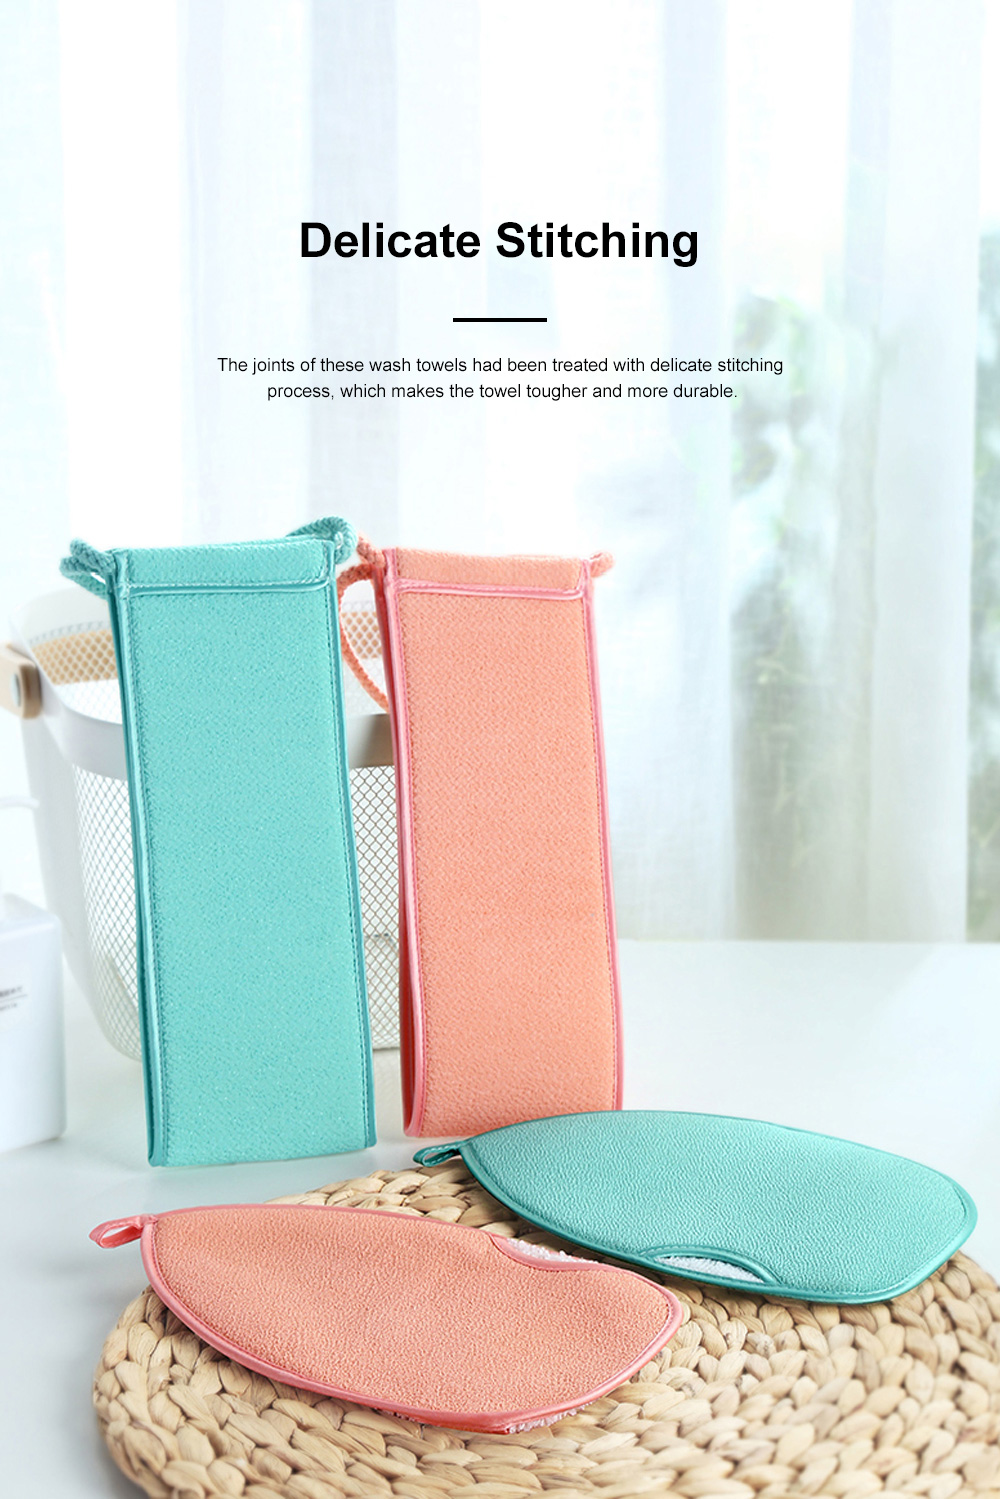 Non-toxic Soft Bamboo Fiber 2PCS Wash Towels Suit Bathing Tool with Double Textures Sling Hand Grip Design 5